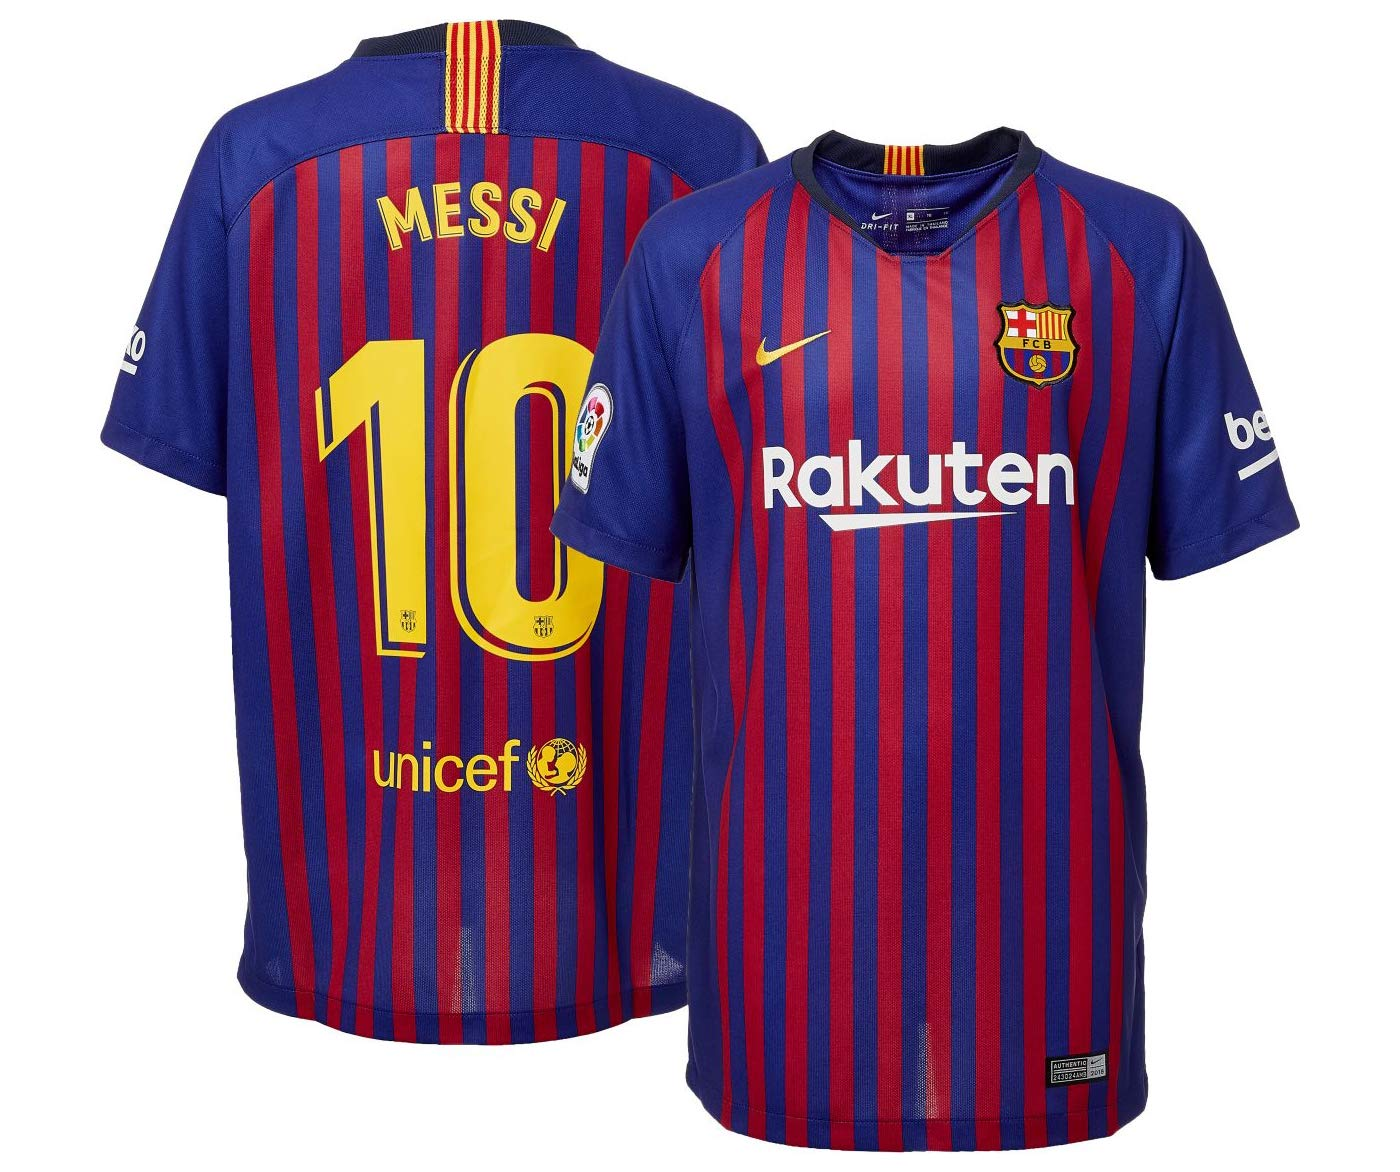 ad6fbb412 Amazon.com   Barcelona 2018 19 Home Replica Player Jersey   Sports    Outdoors